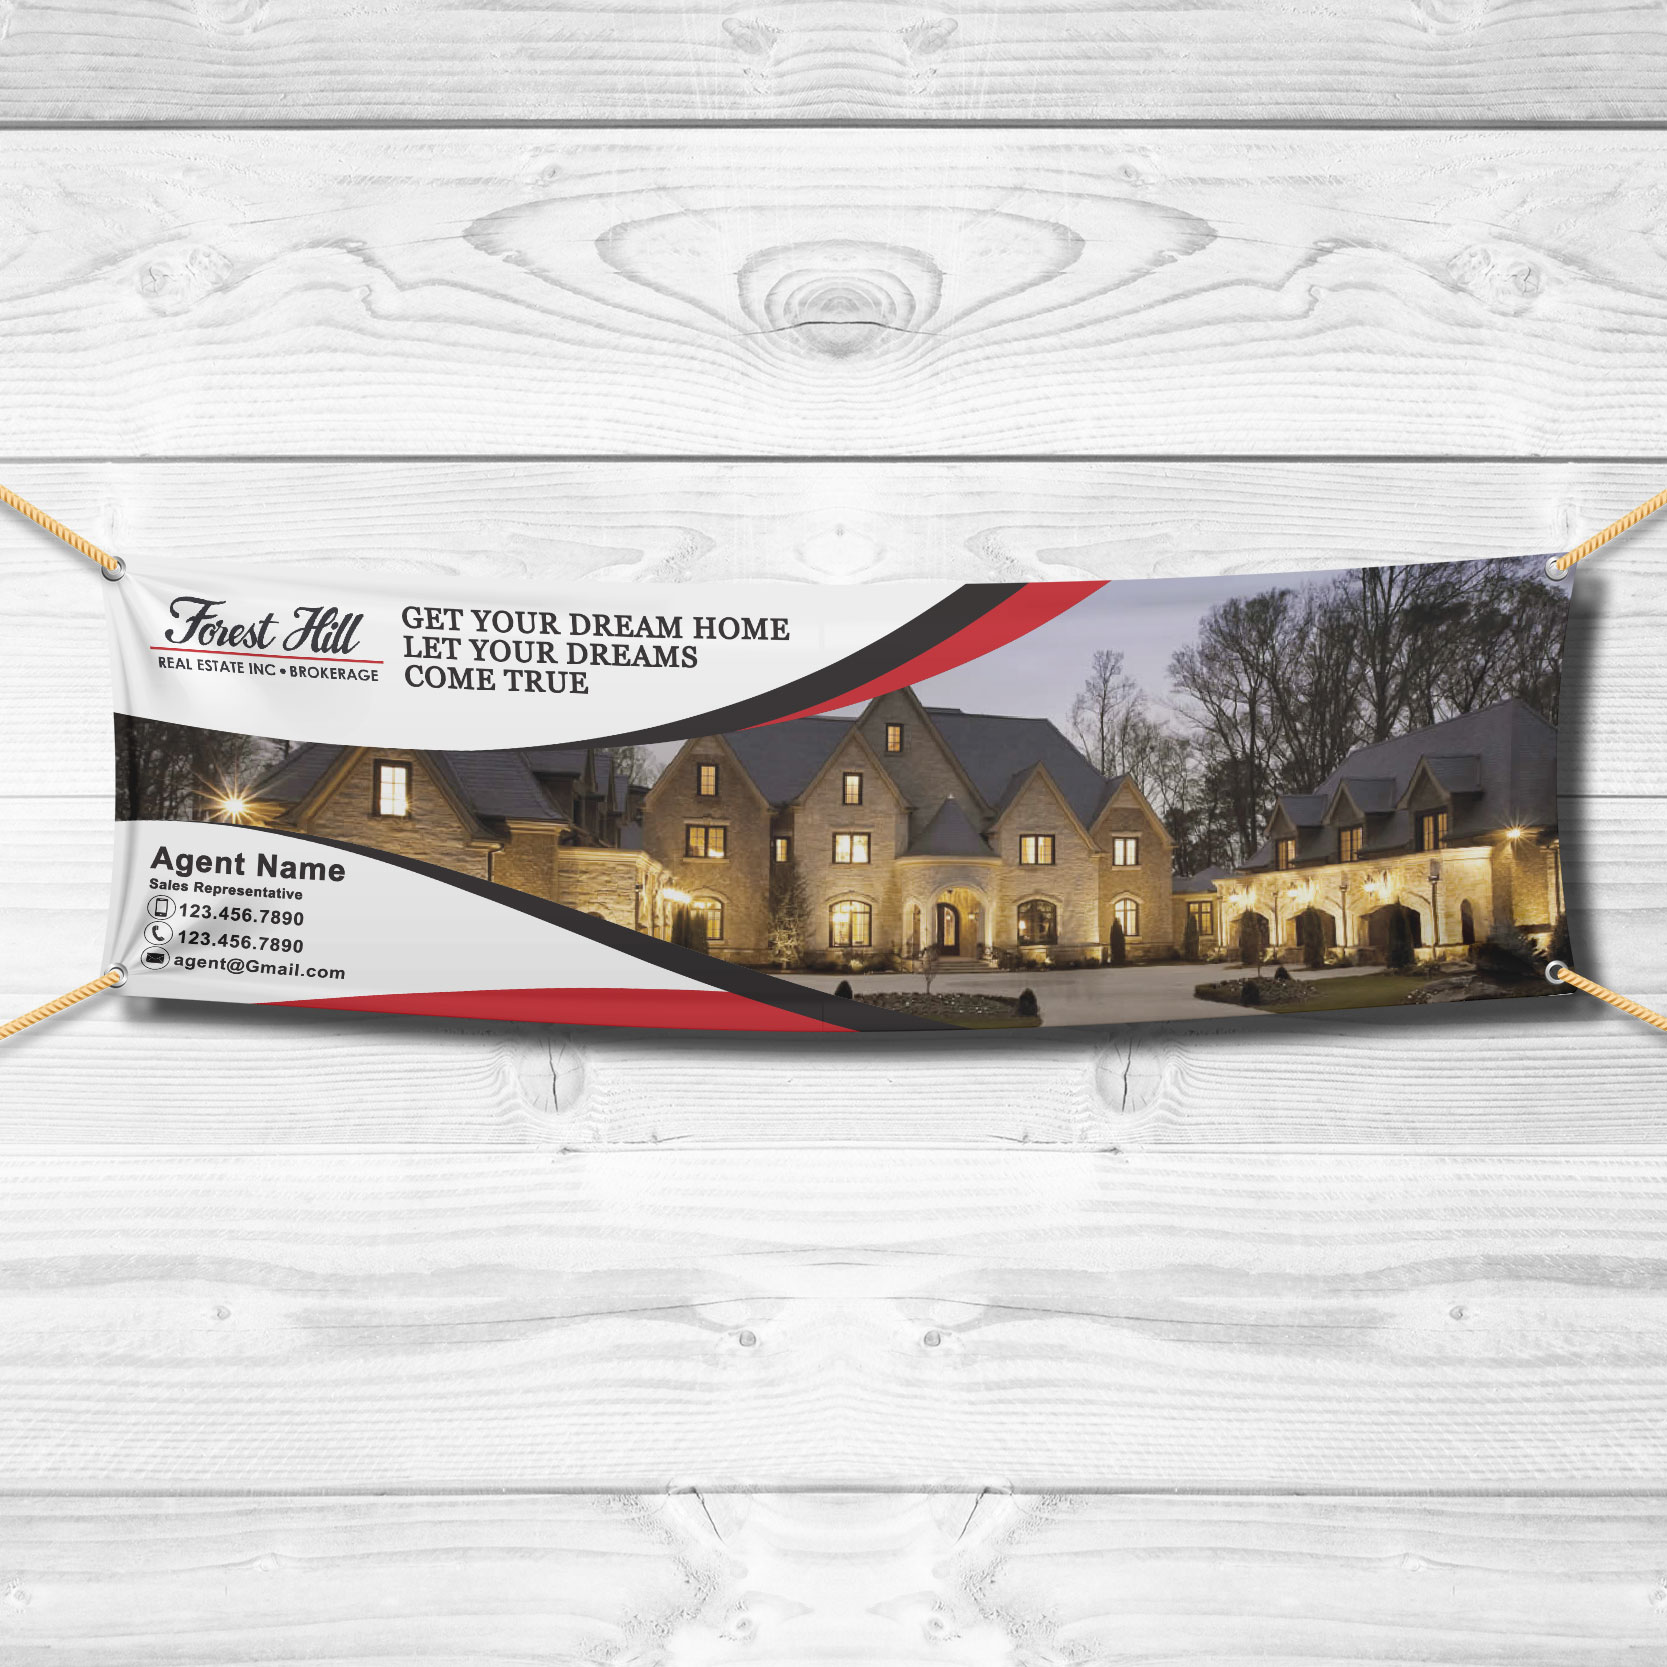 Vinyl Banners<br><br> - Forest Hill